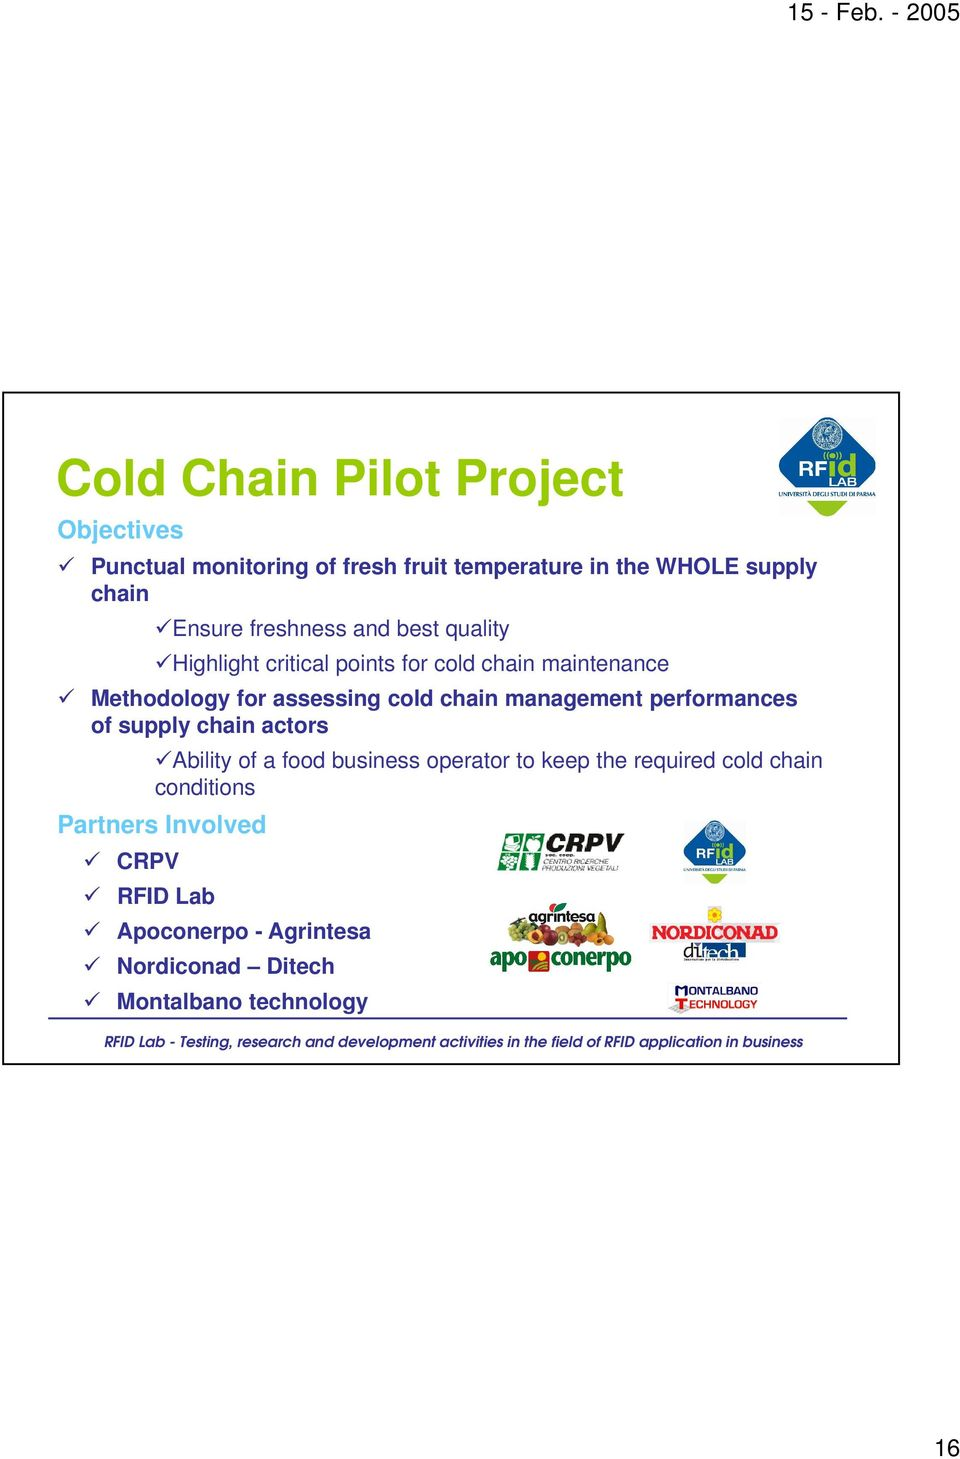 cold chain management performances of supply chain actors Ability of a food business operator to keep the